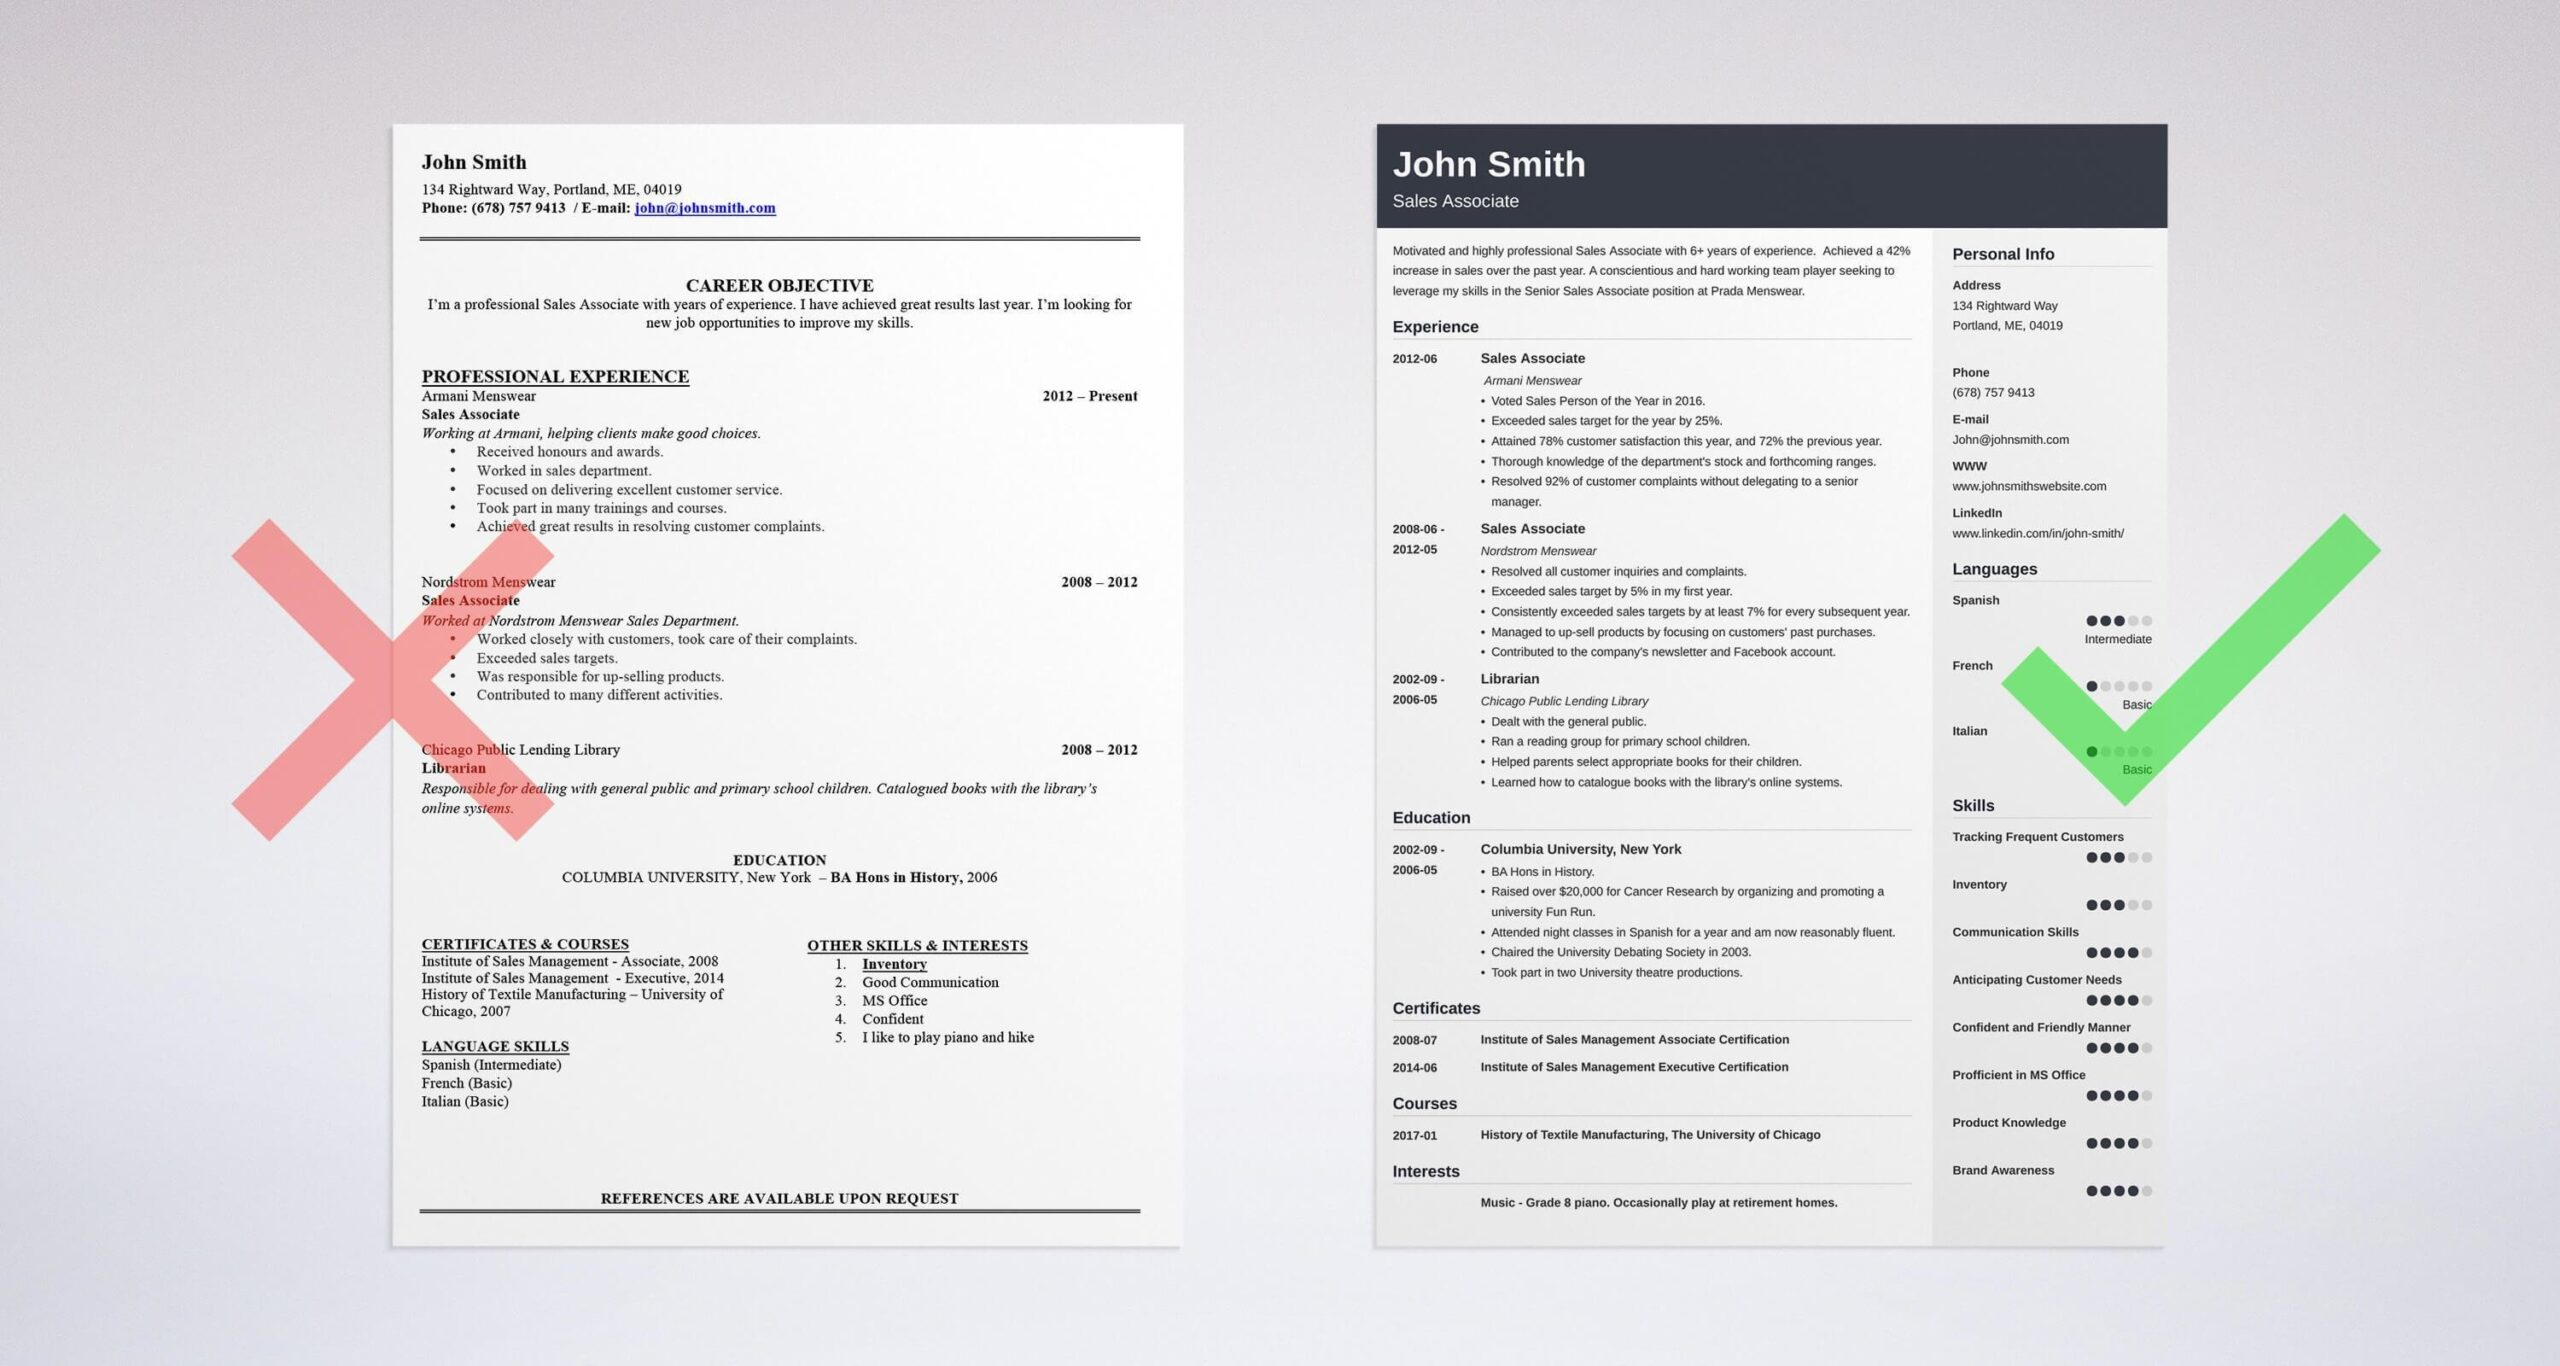 professional resume summary examples statements statement for students on template cubic Resume Resume Summary Statement For Students